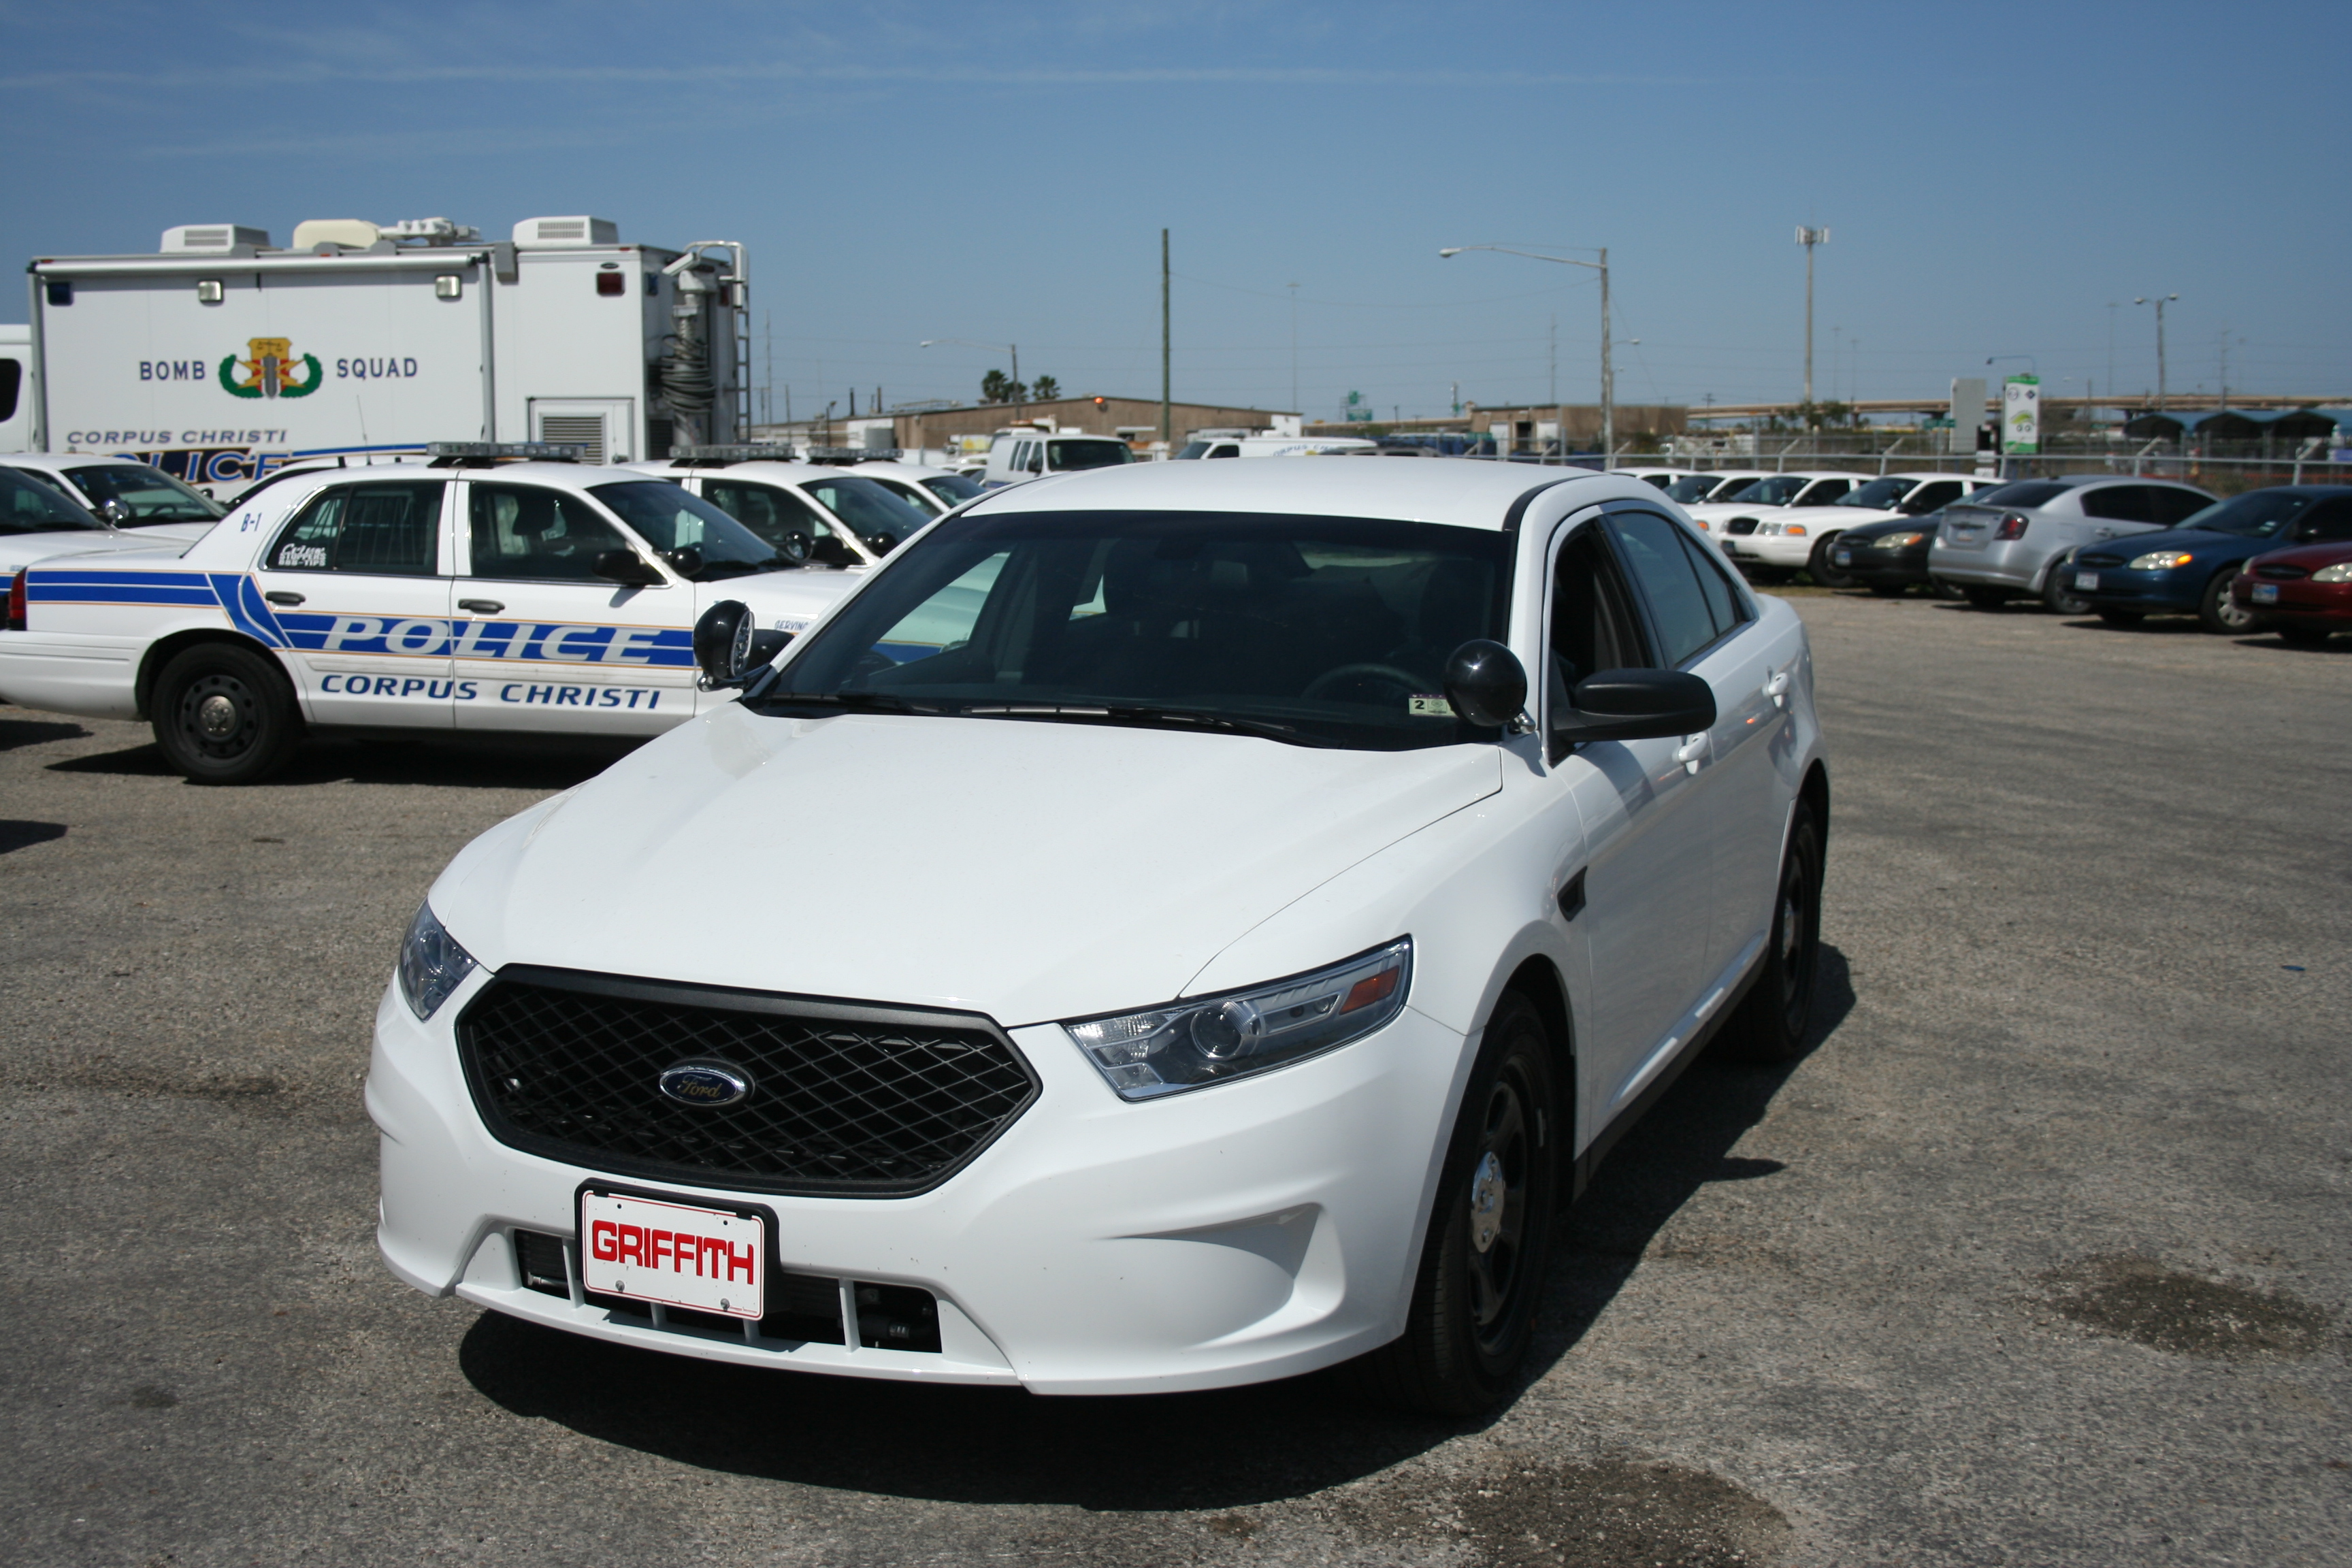 new police patrol cars arrive ccpd blotter. Black Bedroom Furniture Sets. Home Design Ideas